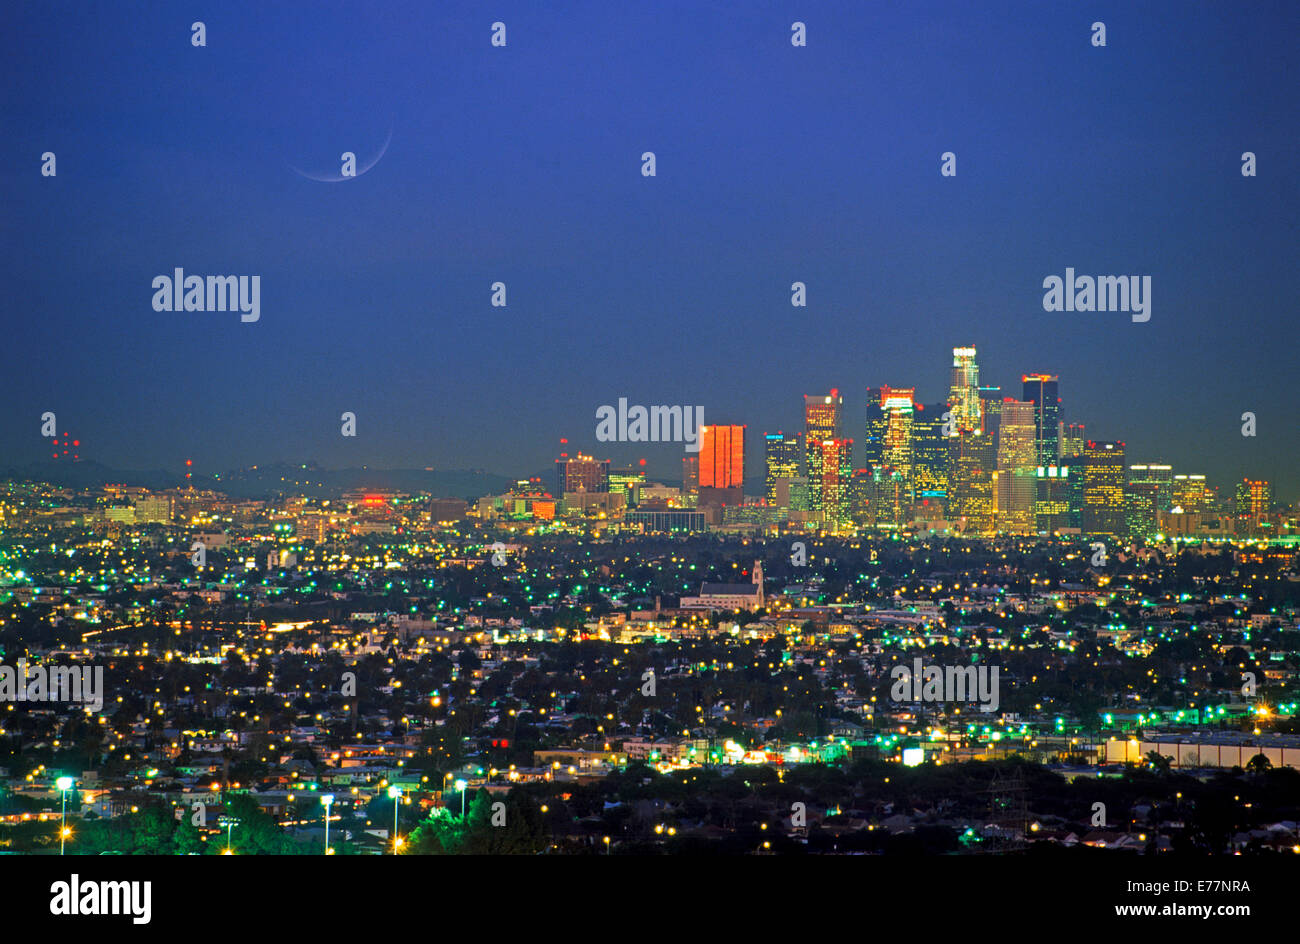 Los Angeles Civic Center and city lights at dusk from Griffith Park Observatory - Stock Image